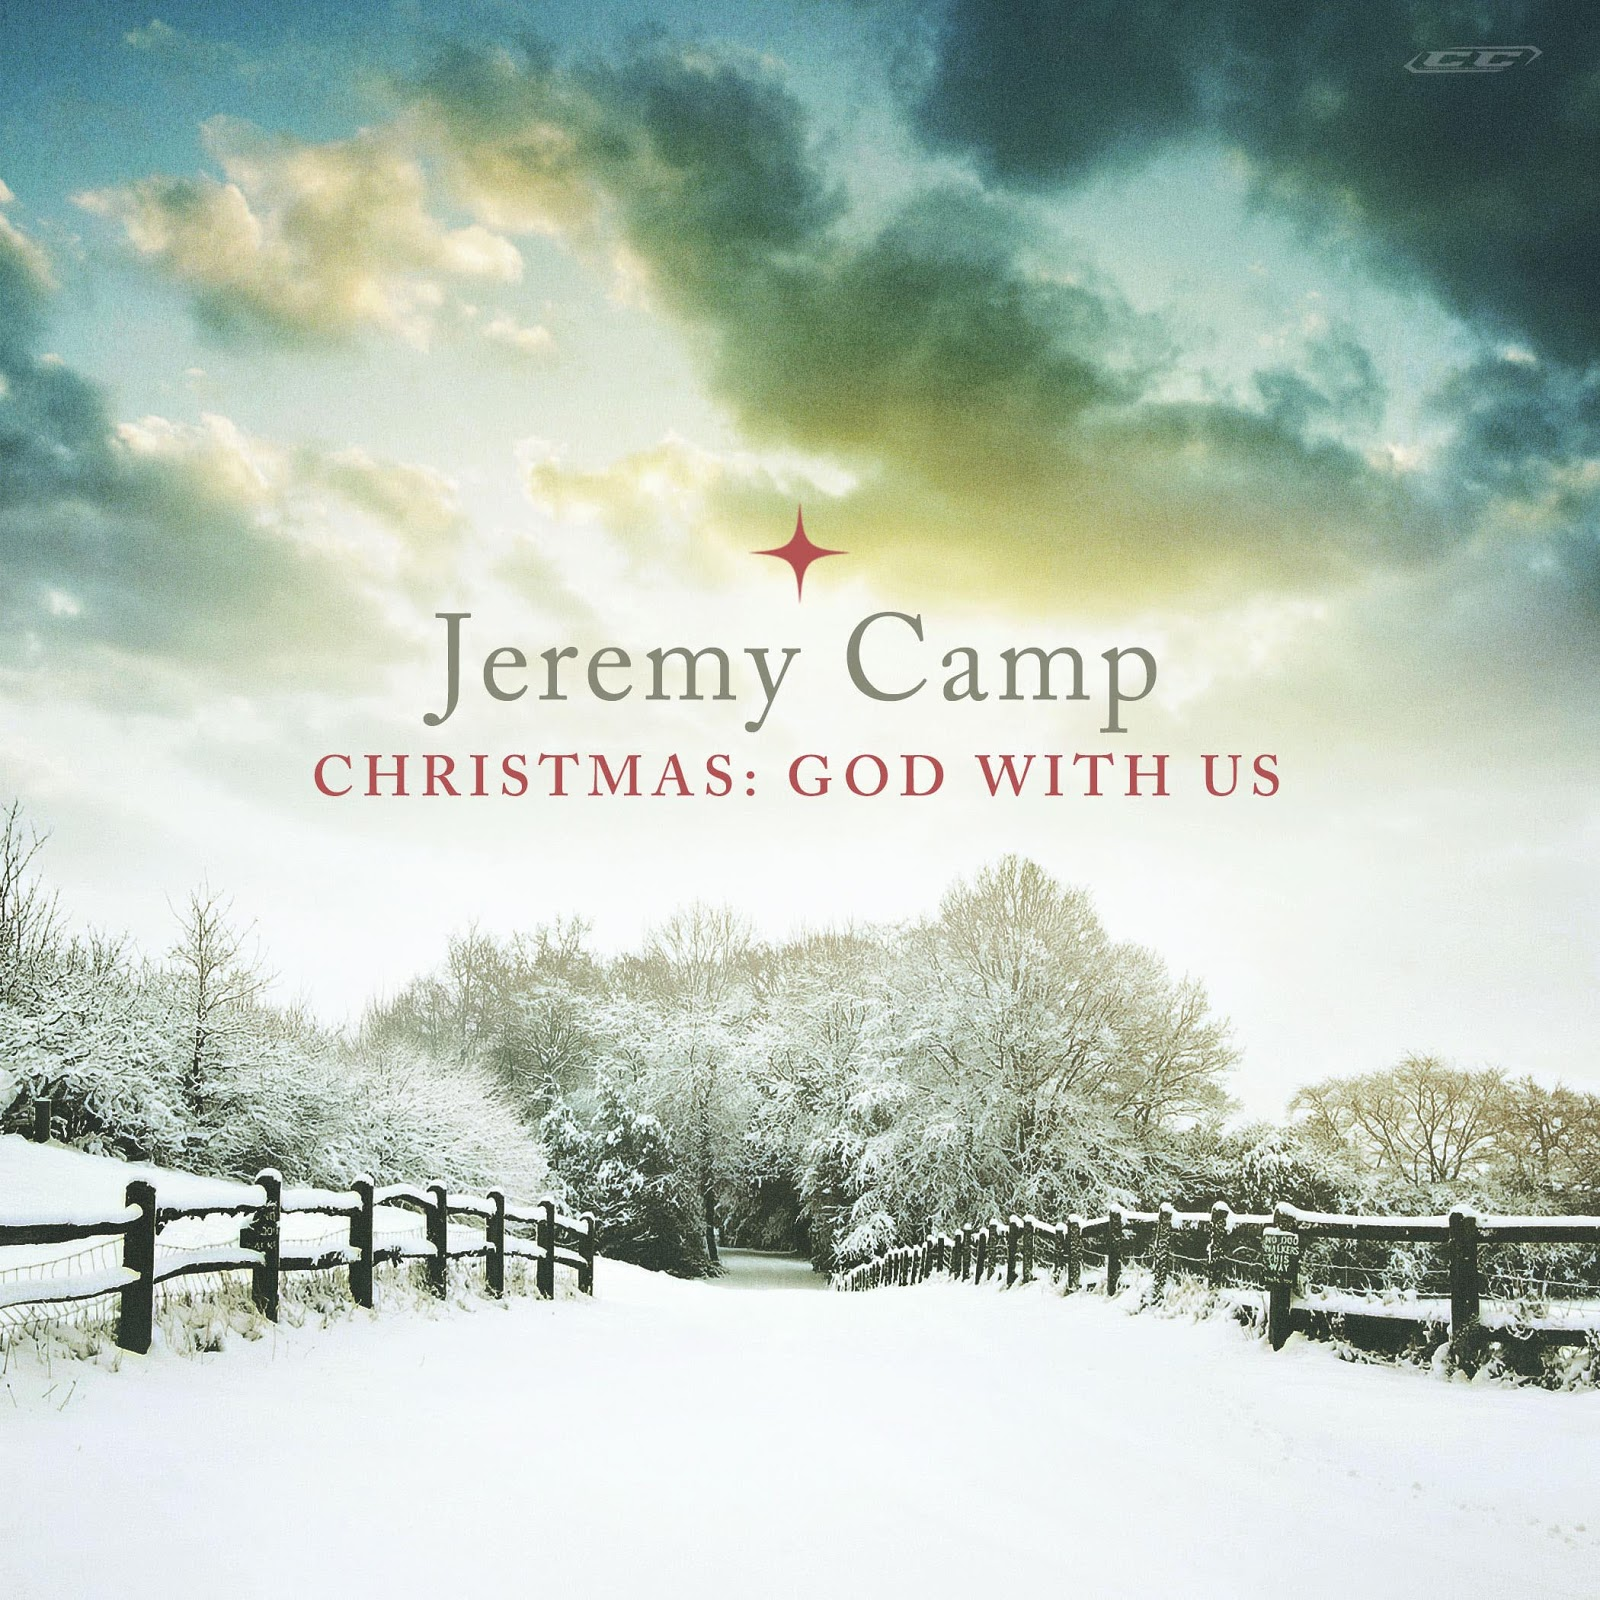 Jeremy Camp - Christmas, God With Us 2012 English Christian Christmas Album Download